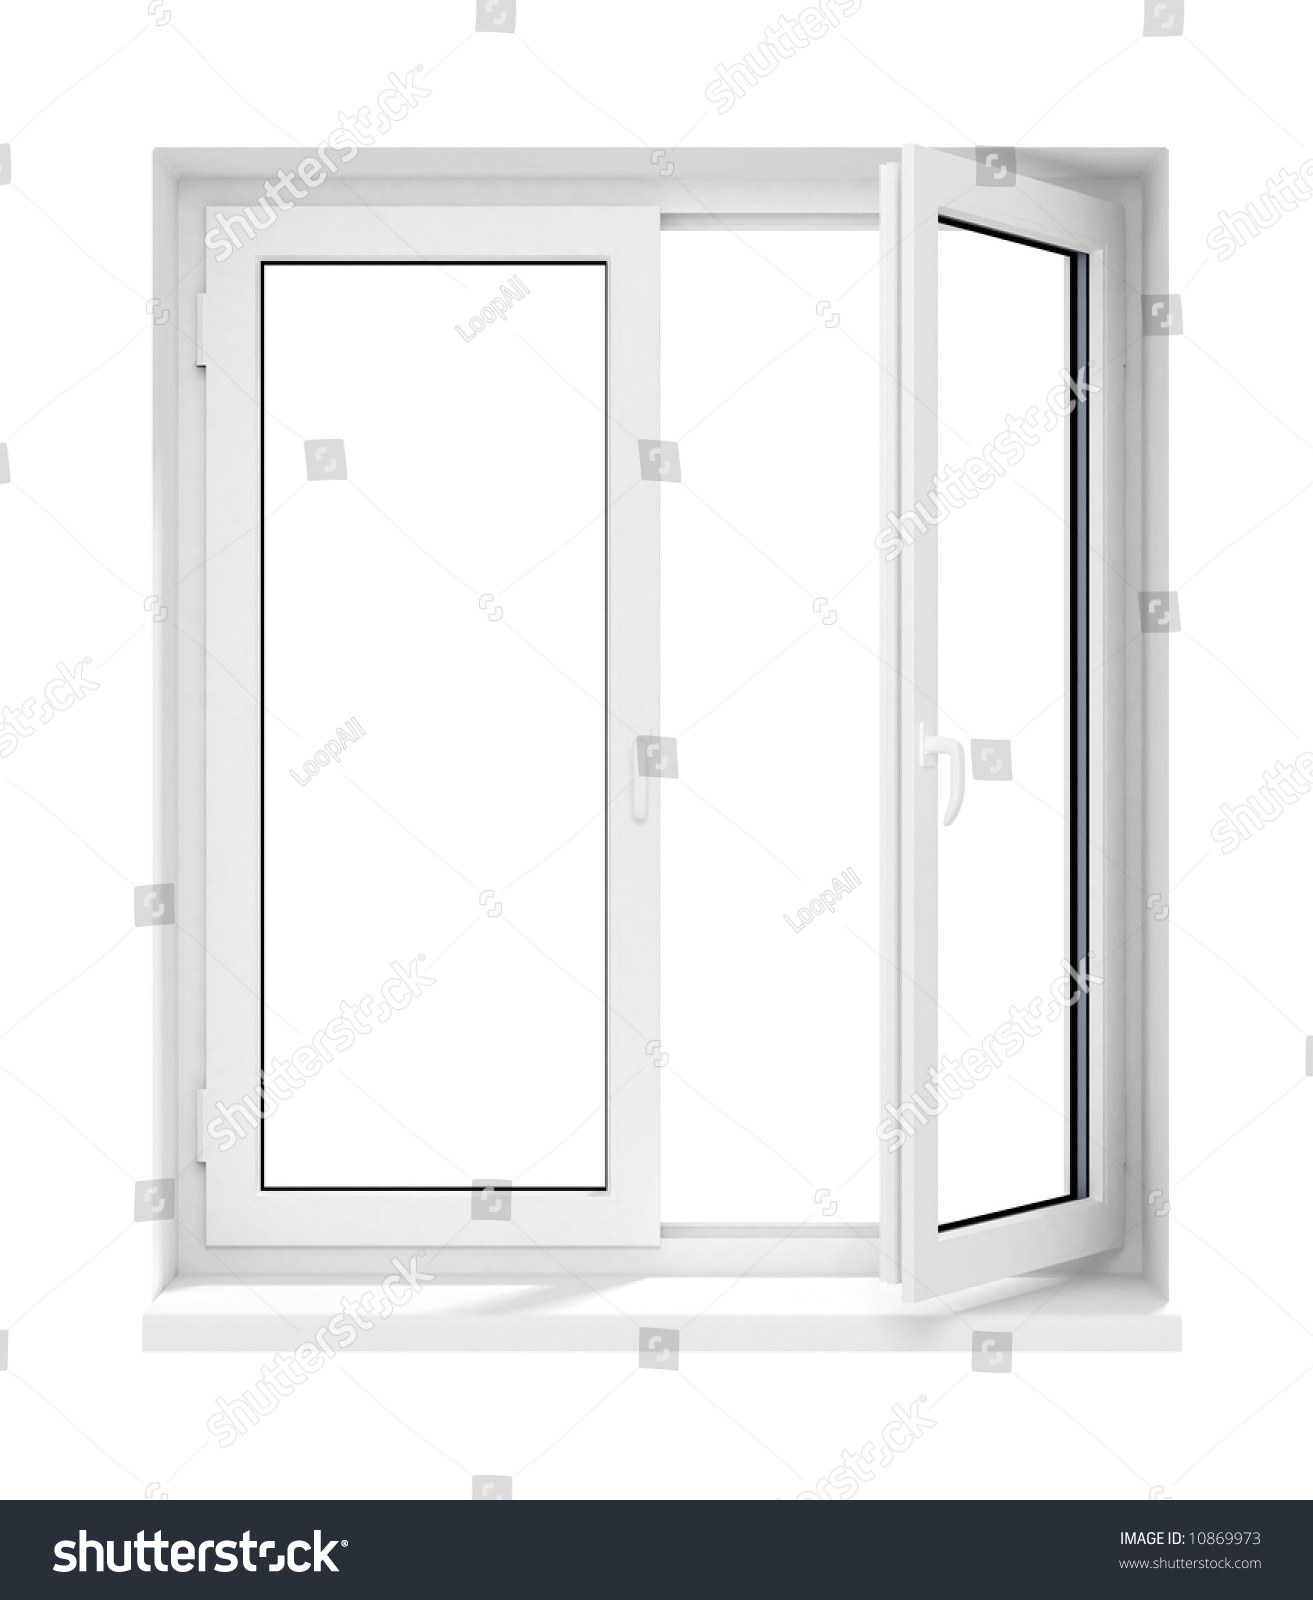 new opened plastic glass window frame isolated on the white ...